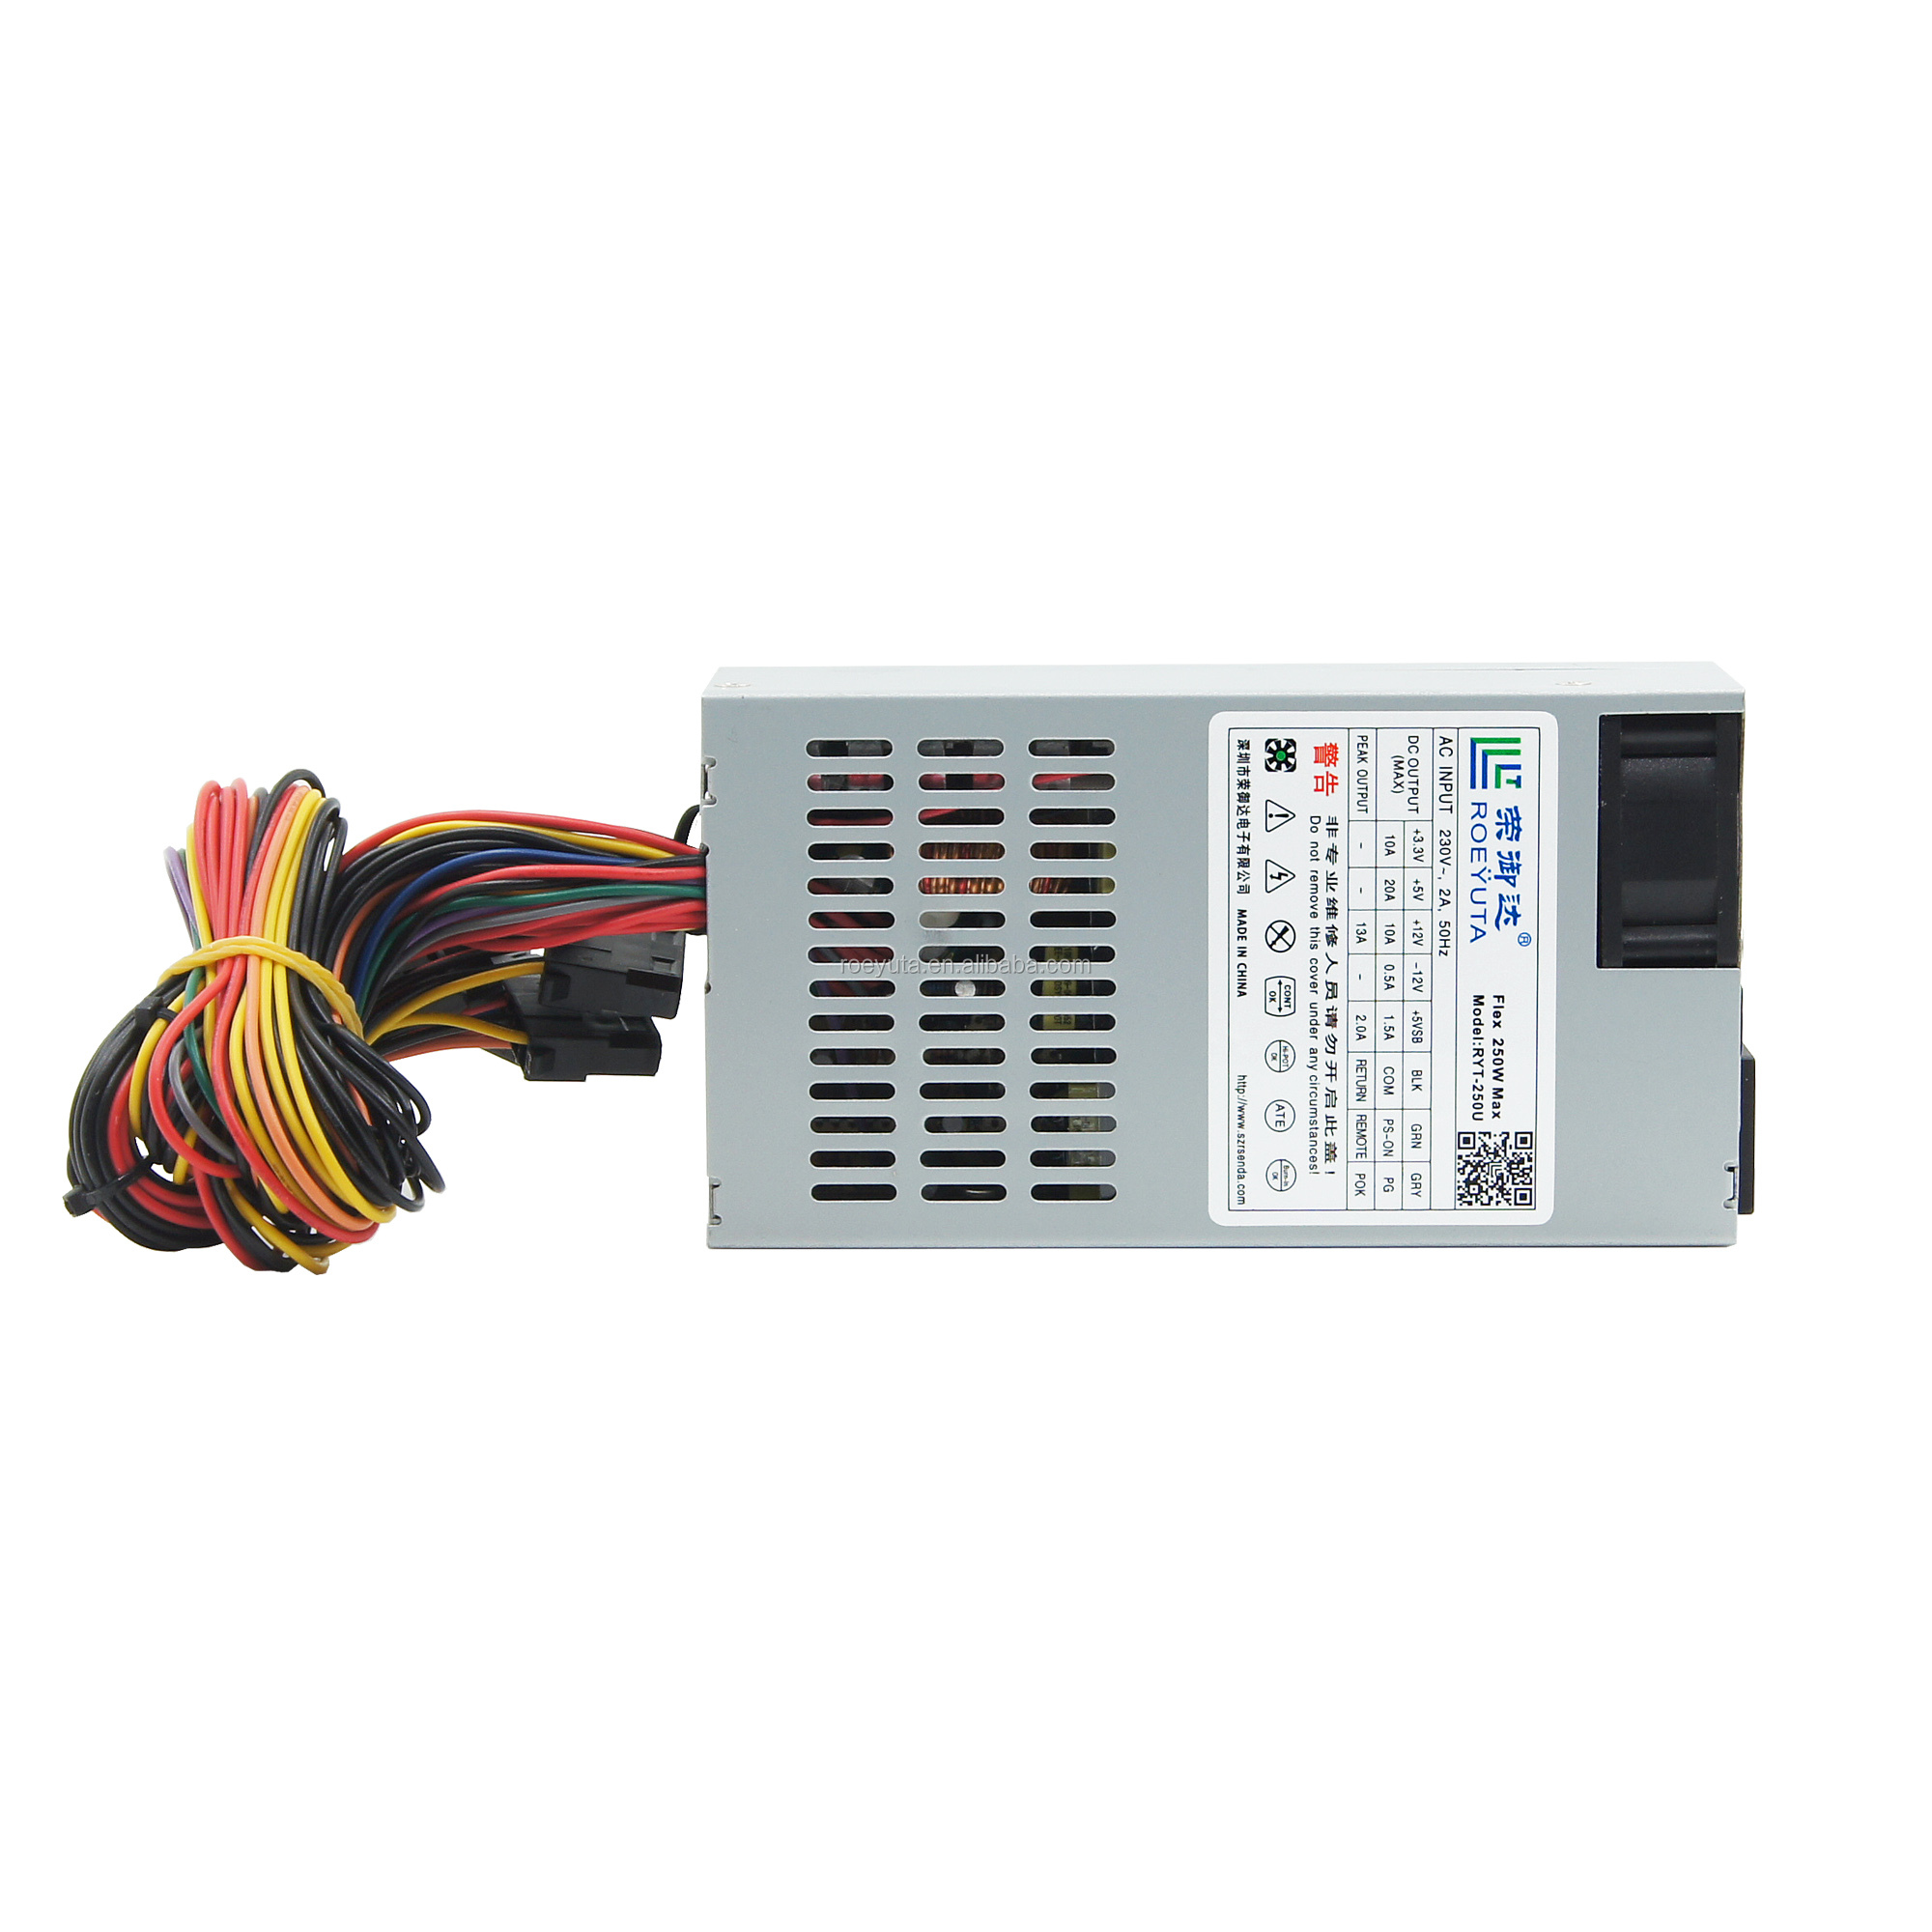 1U FLEX  atx power supply 250W for cctv camera